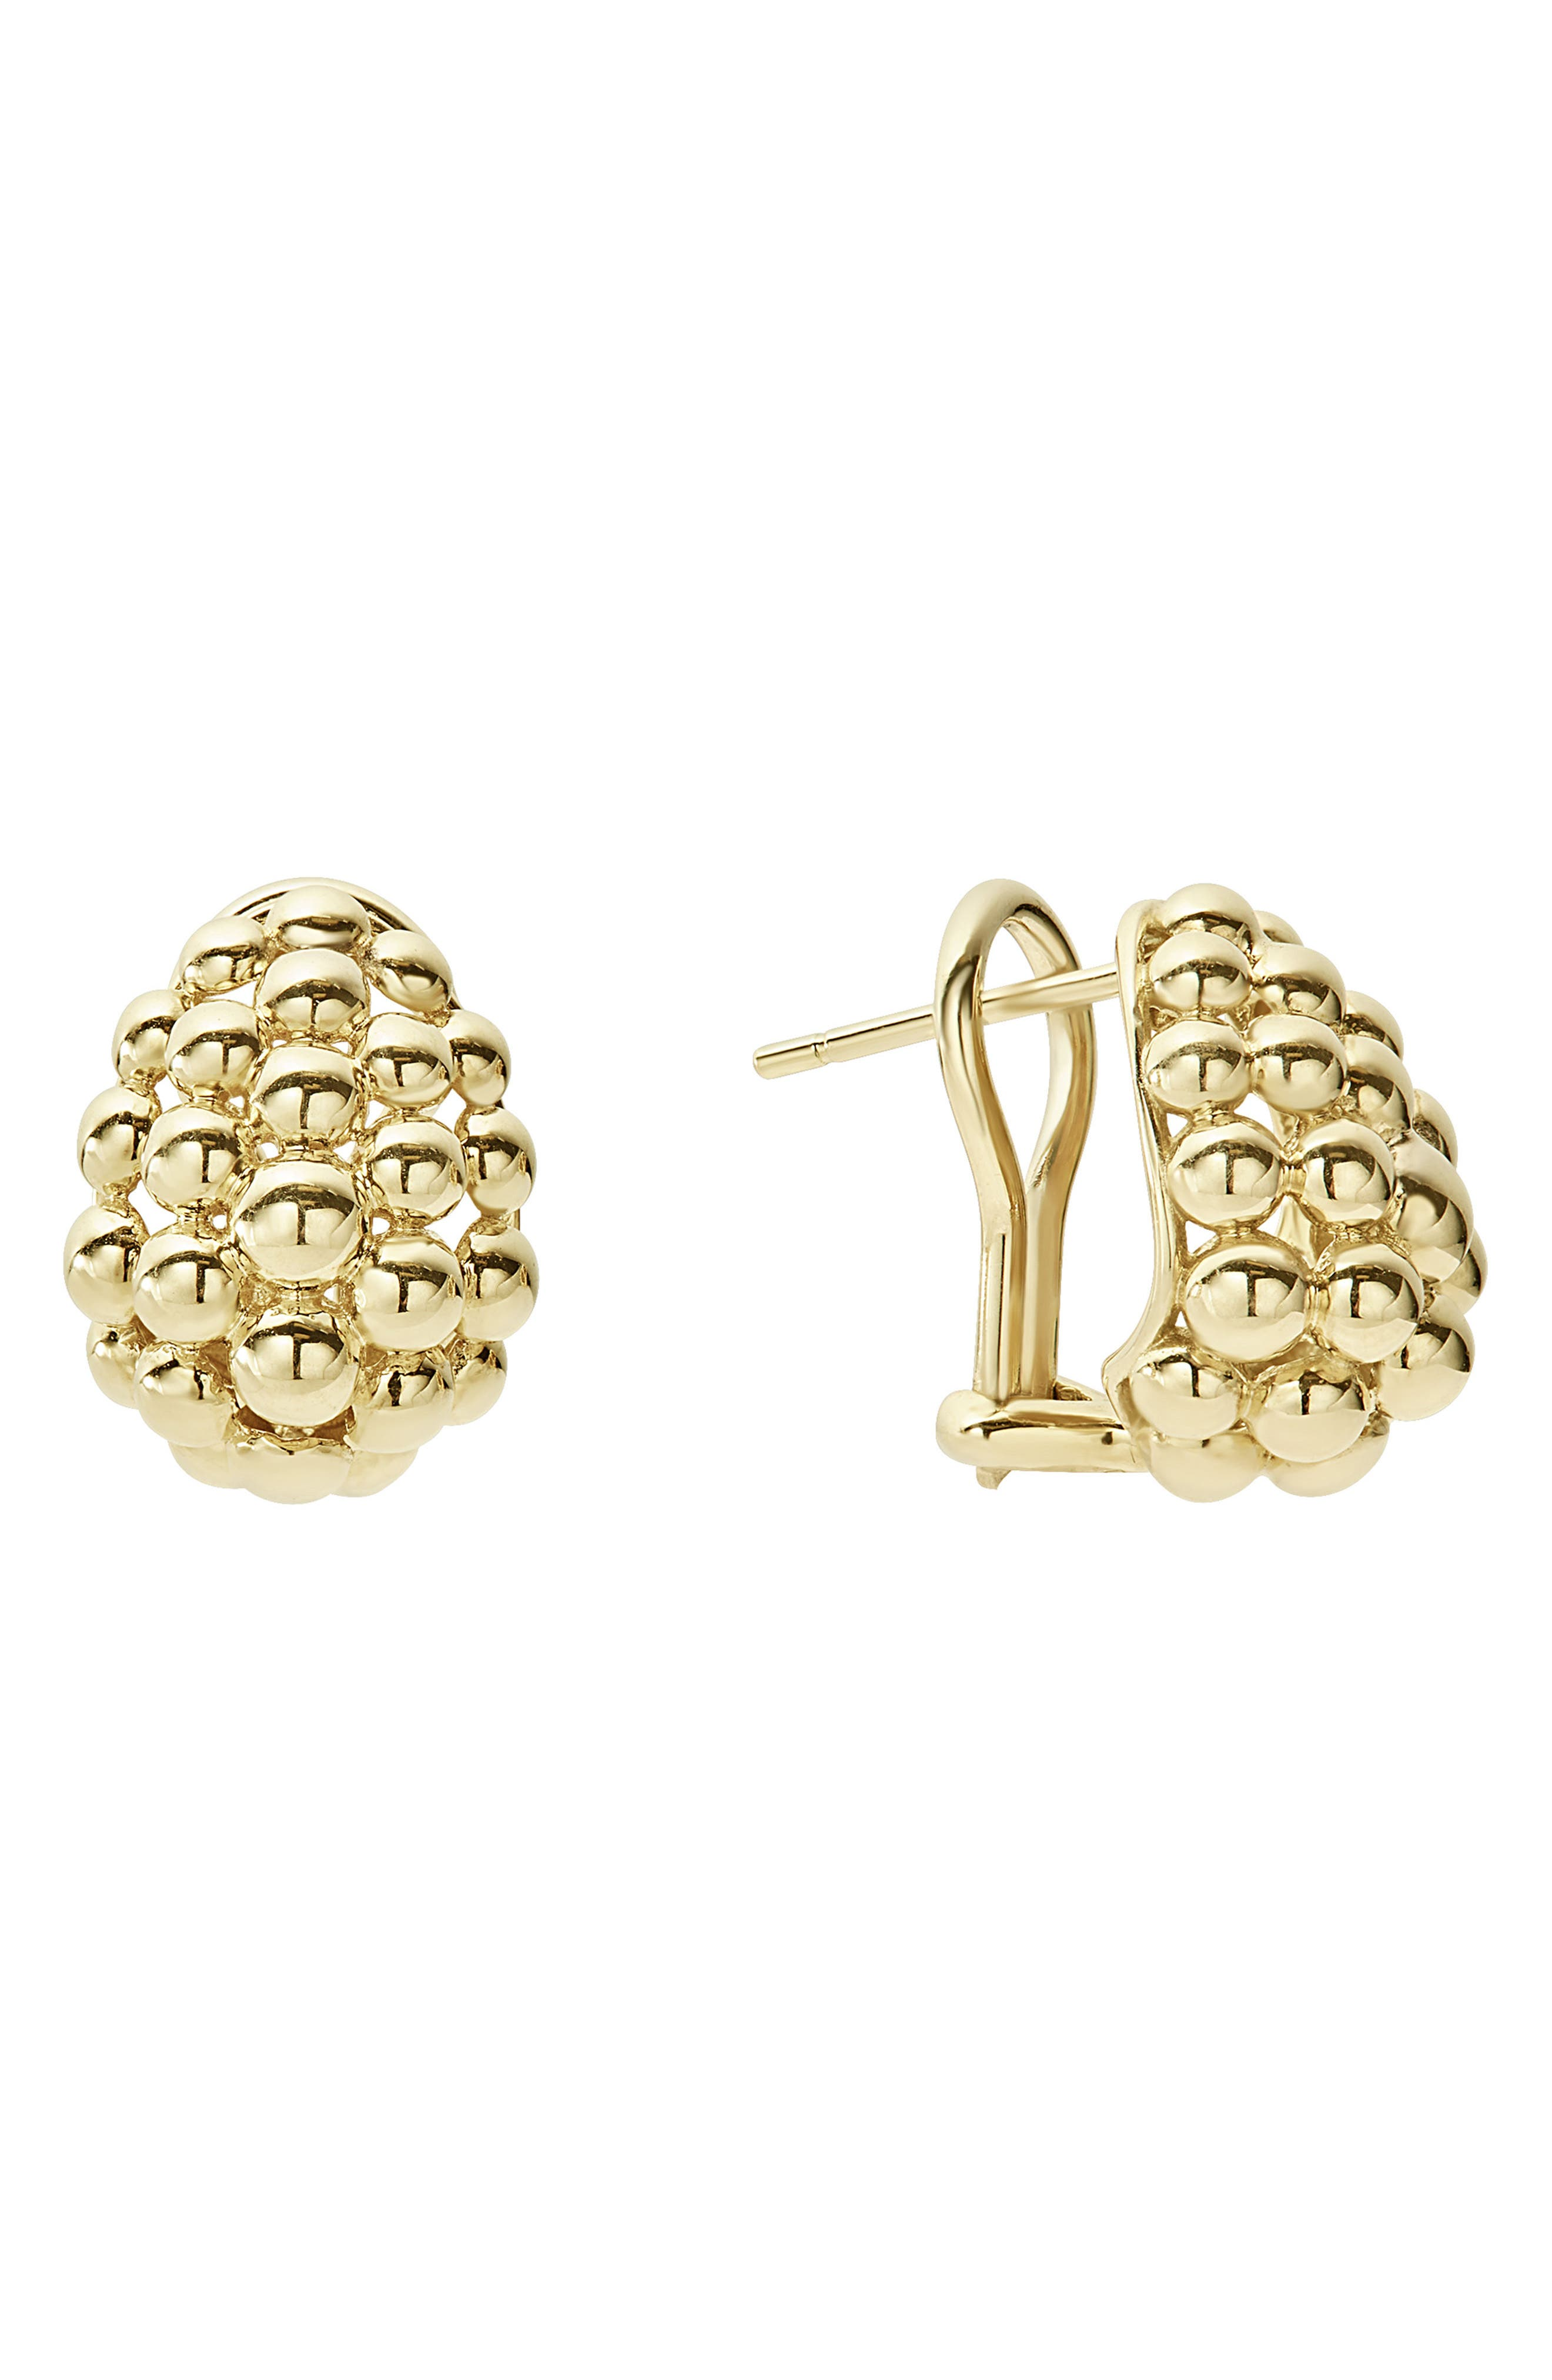 Caviar Gold Bold Medium Omega Clip Earrings,                         Main,                         color, Gold